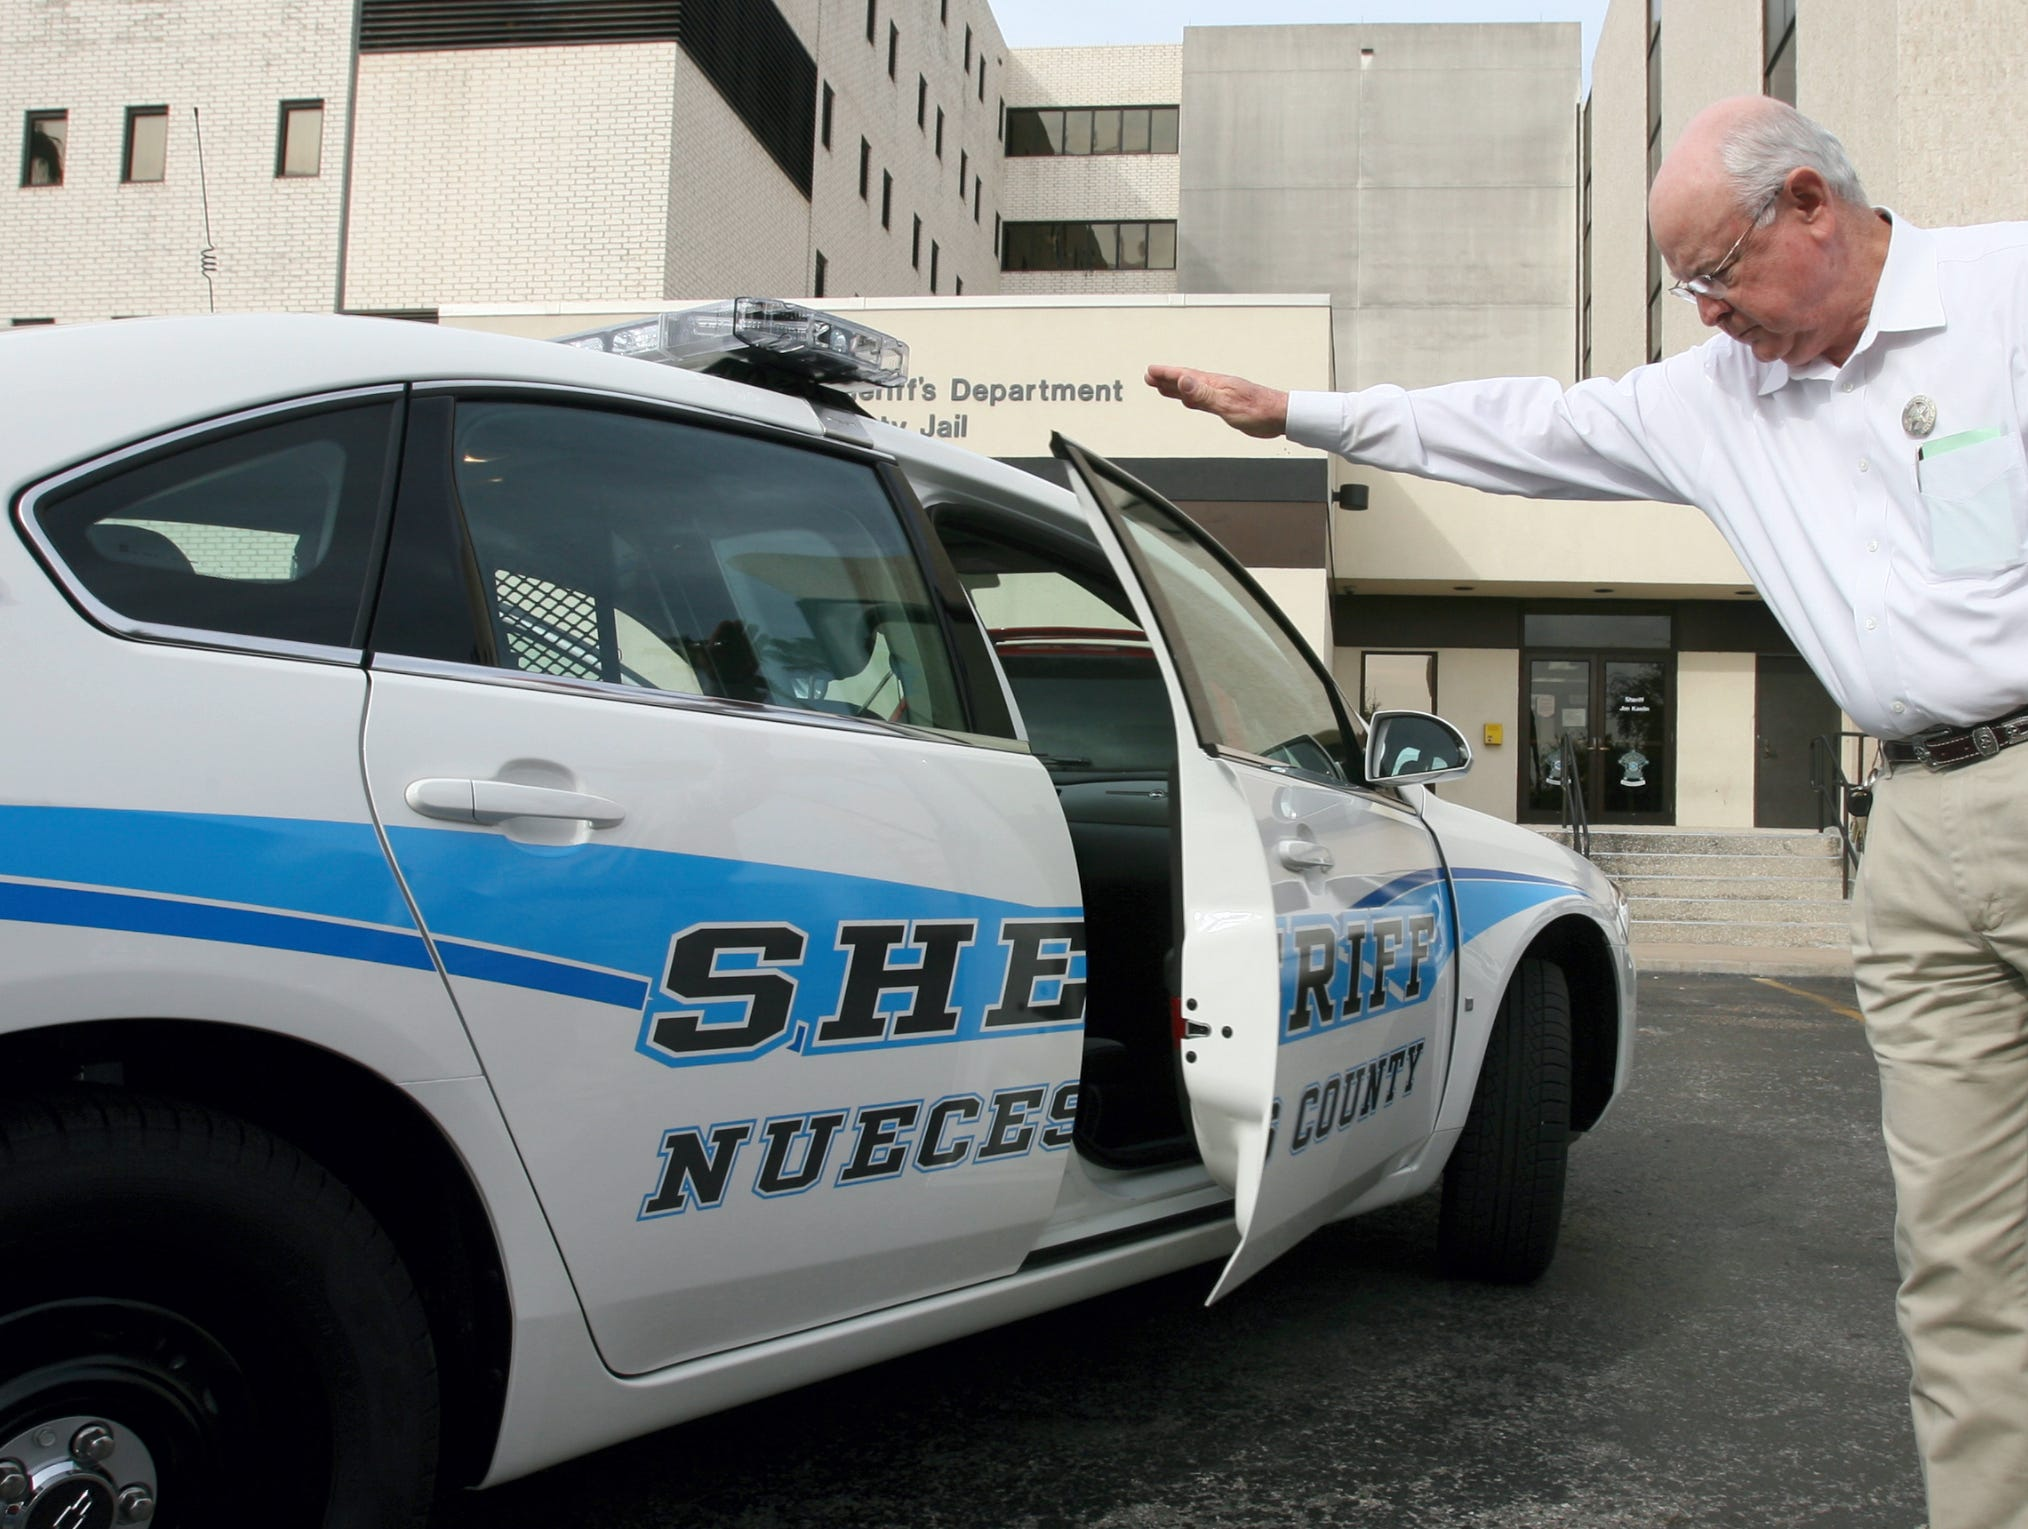 Sheriff Jim Kaelin shows off one of two new patrol cars that were put in commission on Friday. The cars are two of six new Chevy Impala cars that are striped with the new colors of the Nueces County Sheriff's Office (Kaelin said they're changing to office instead of department) and represent the new vision of the office.